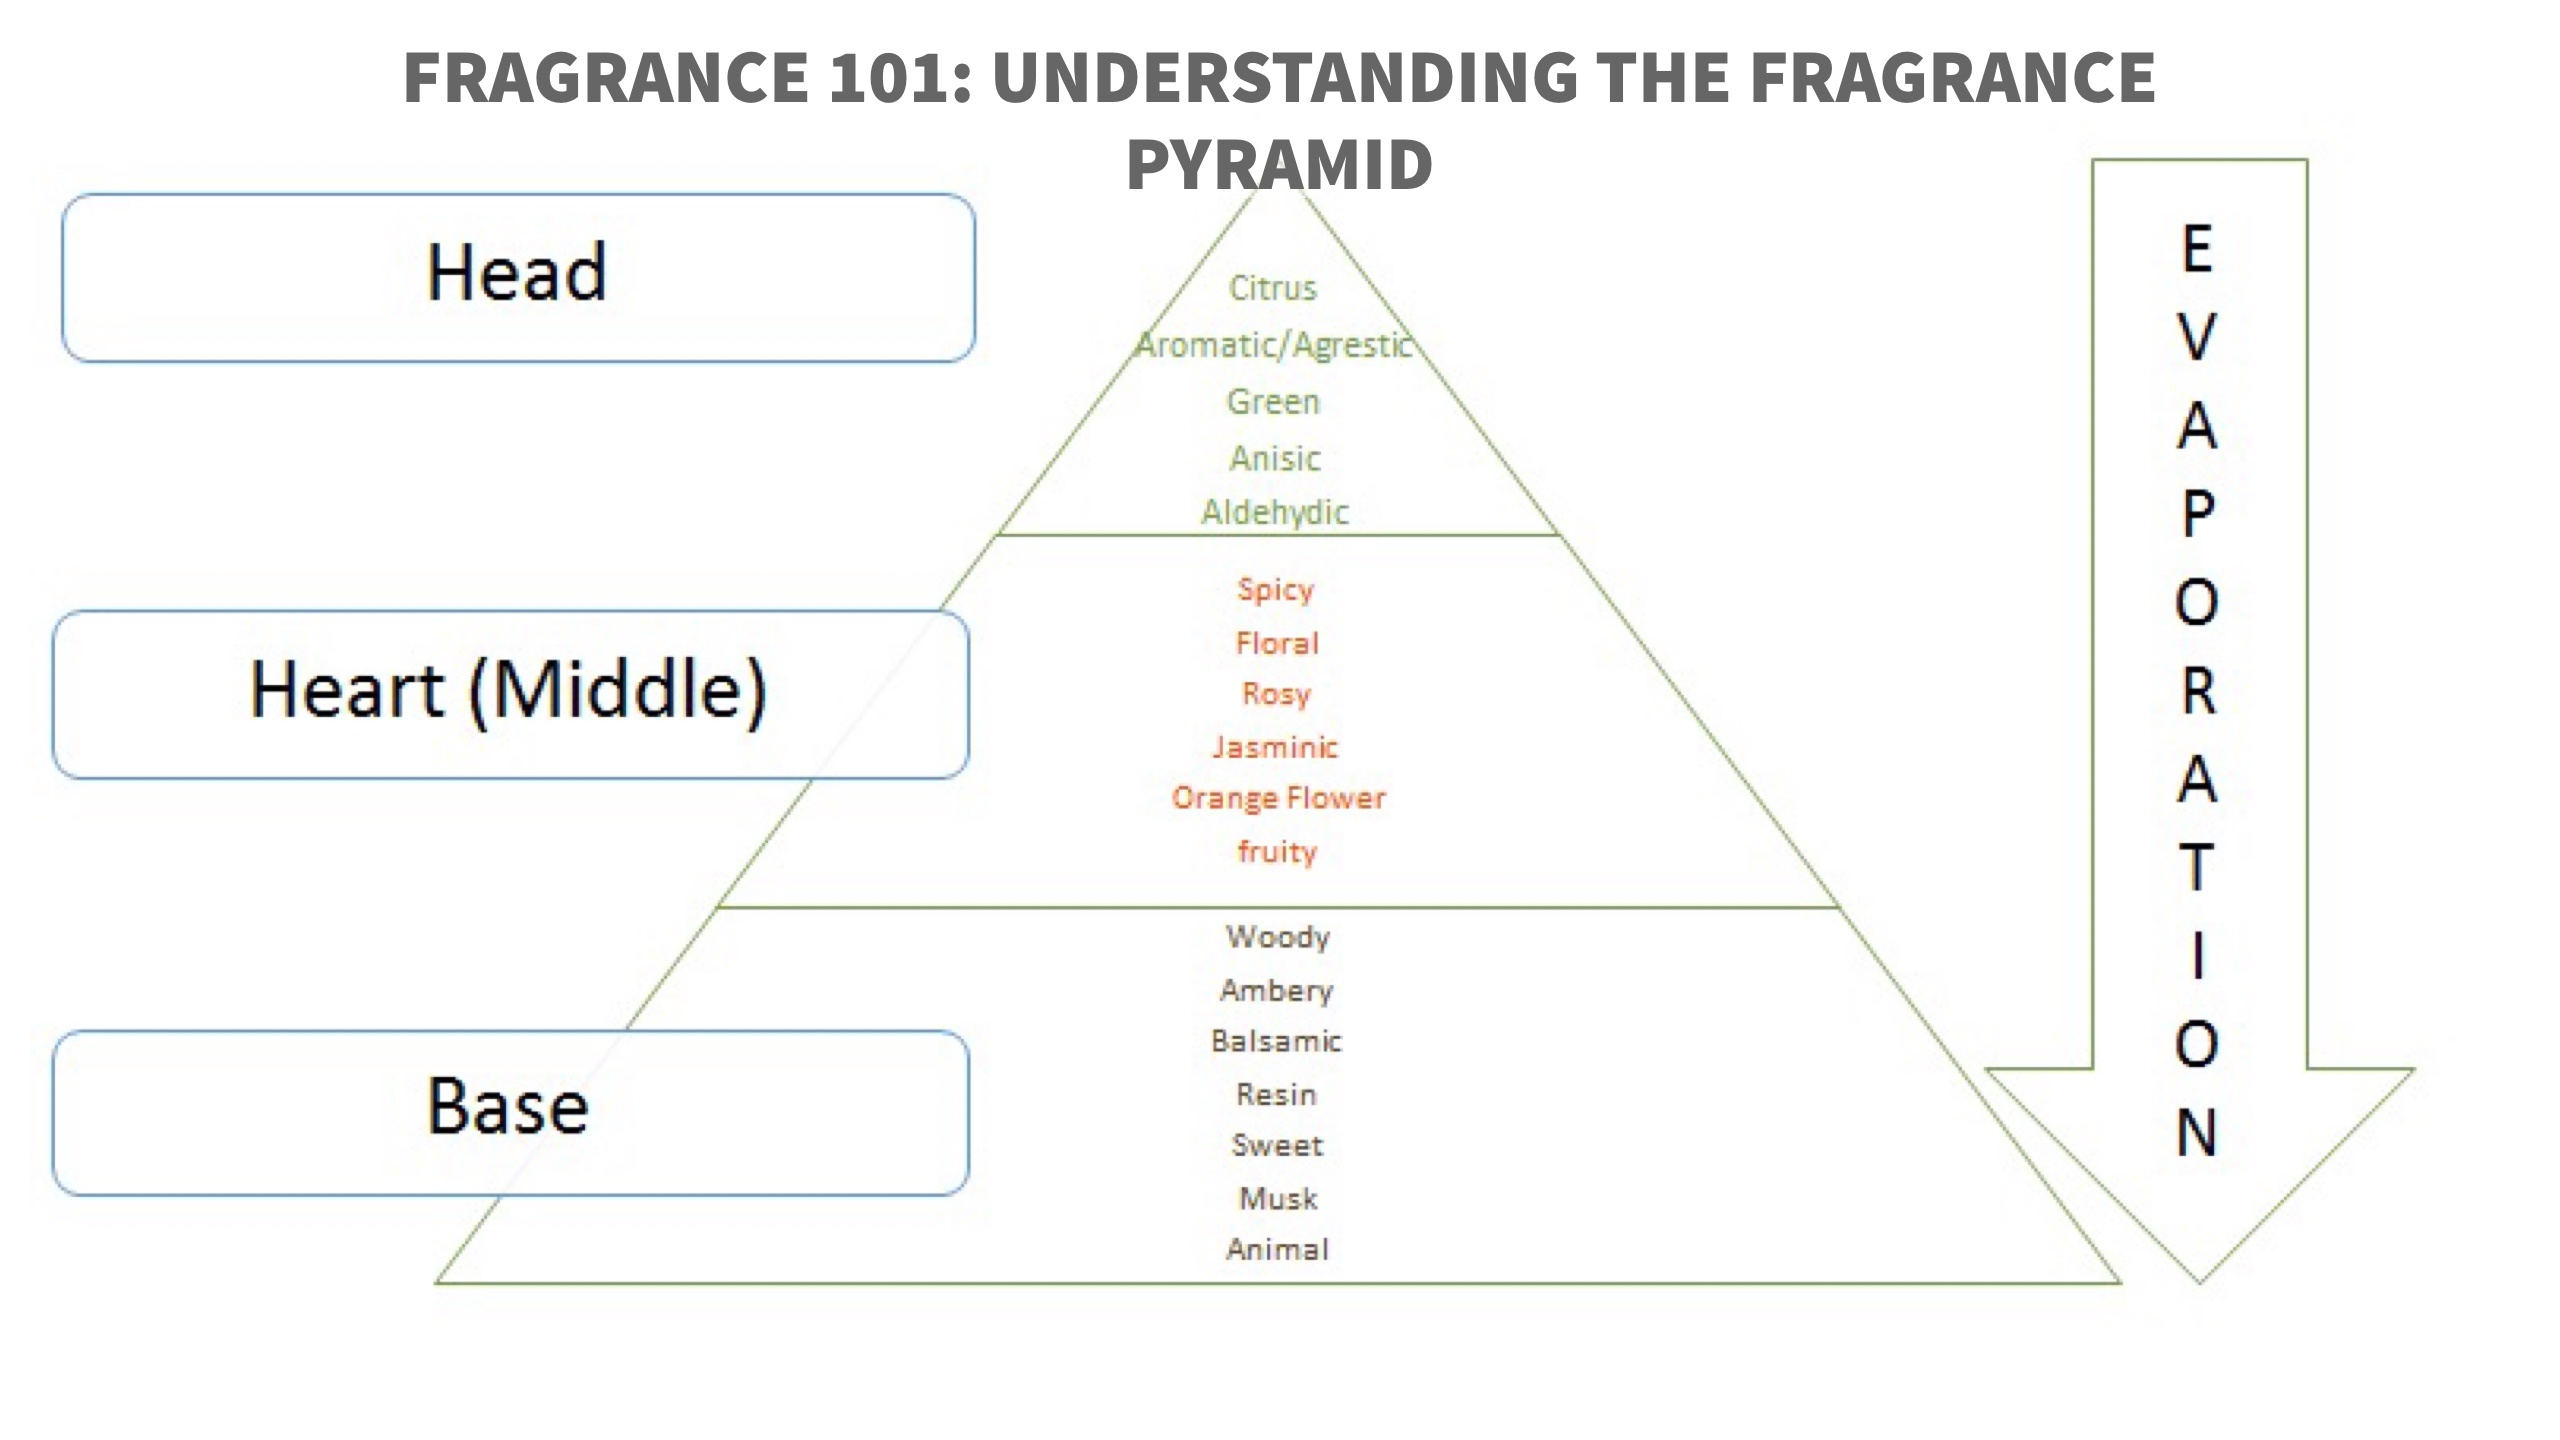 Fragrance 101: Understanding The Fragrance Pyramid